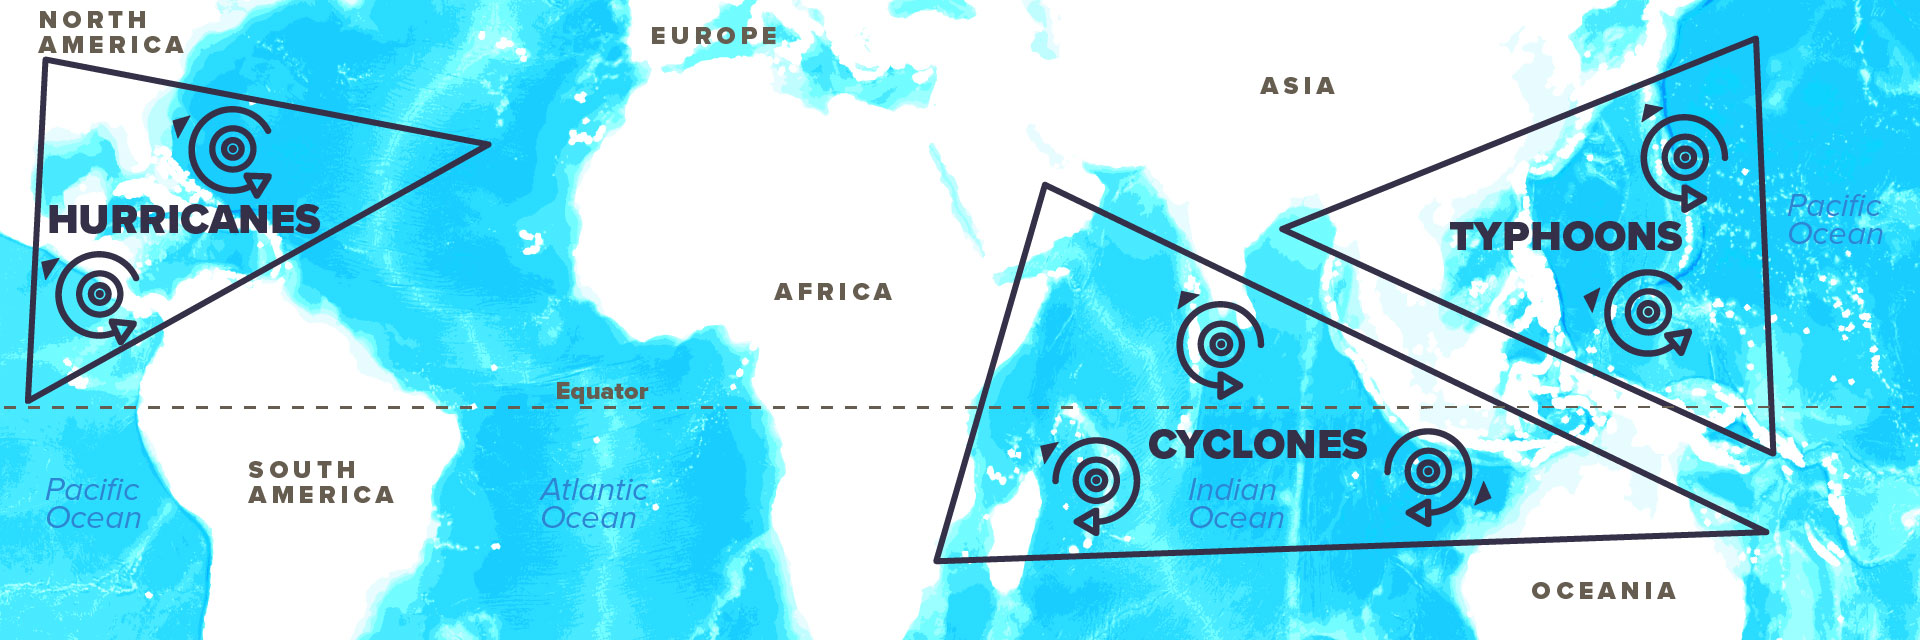 Cyclones, Hurricanes and Typhoons map